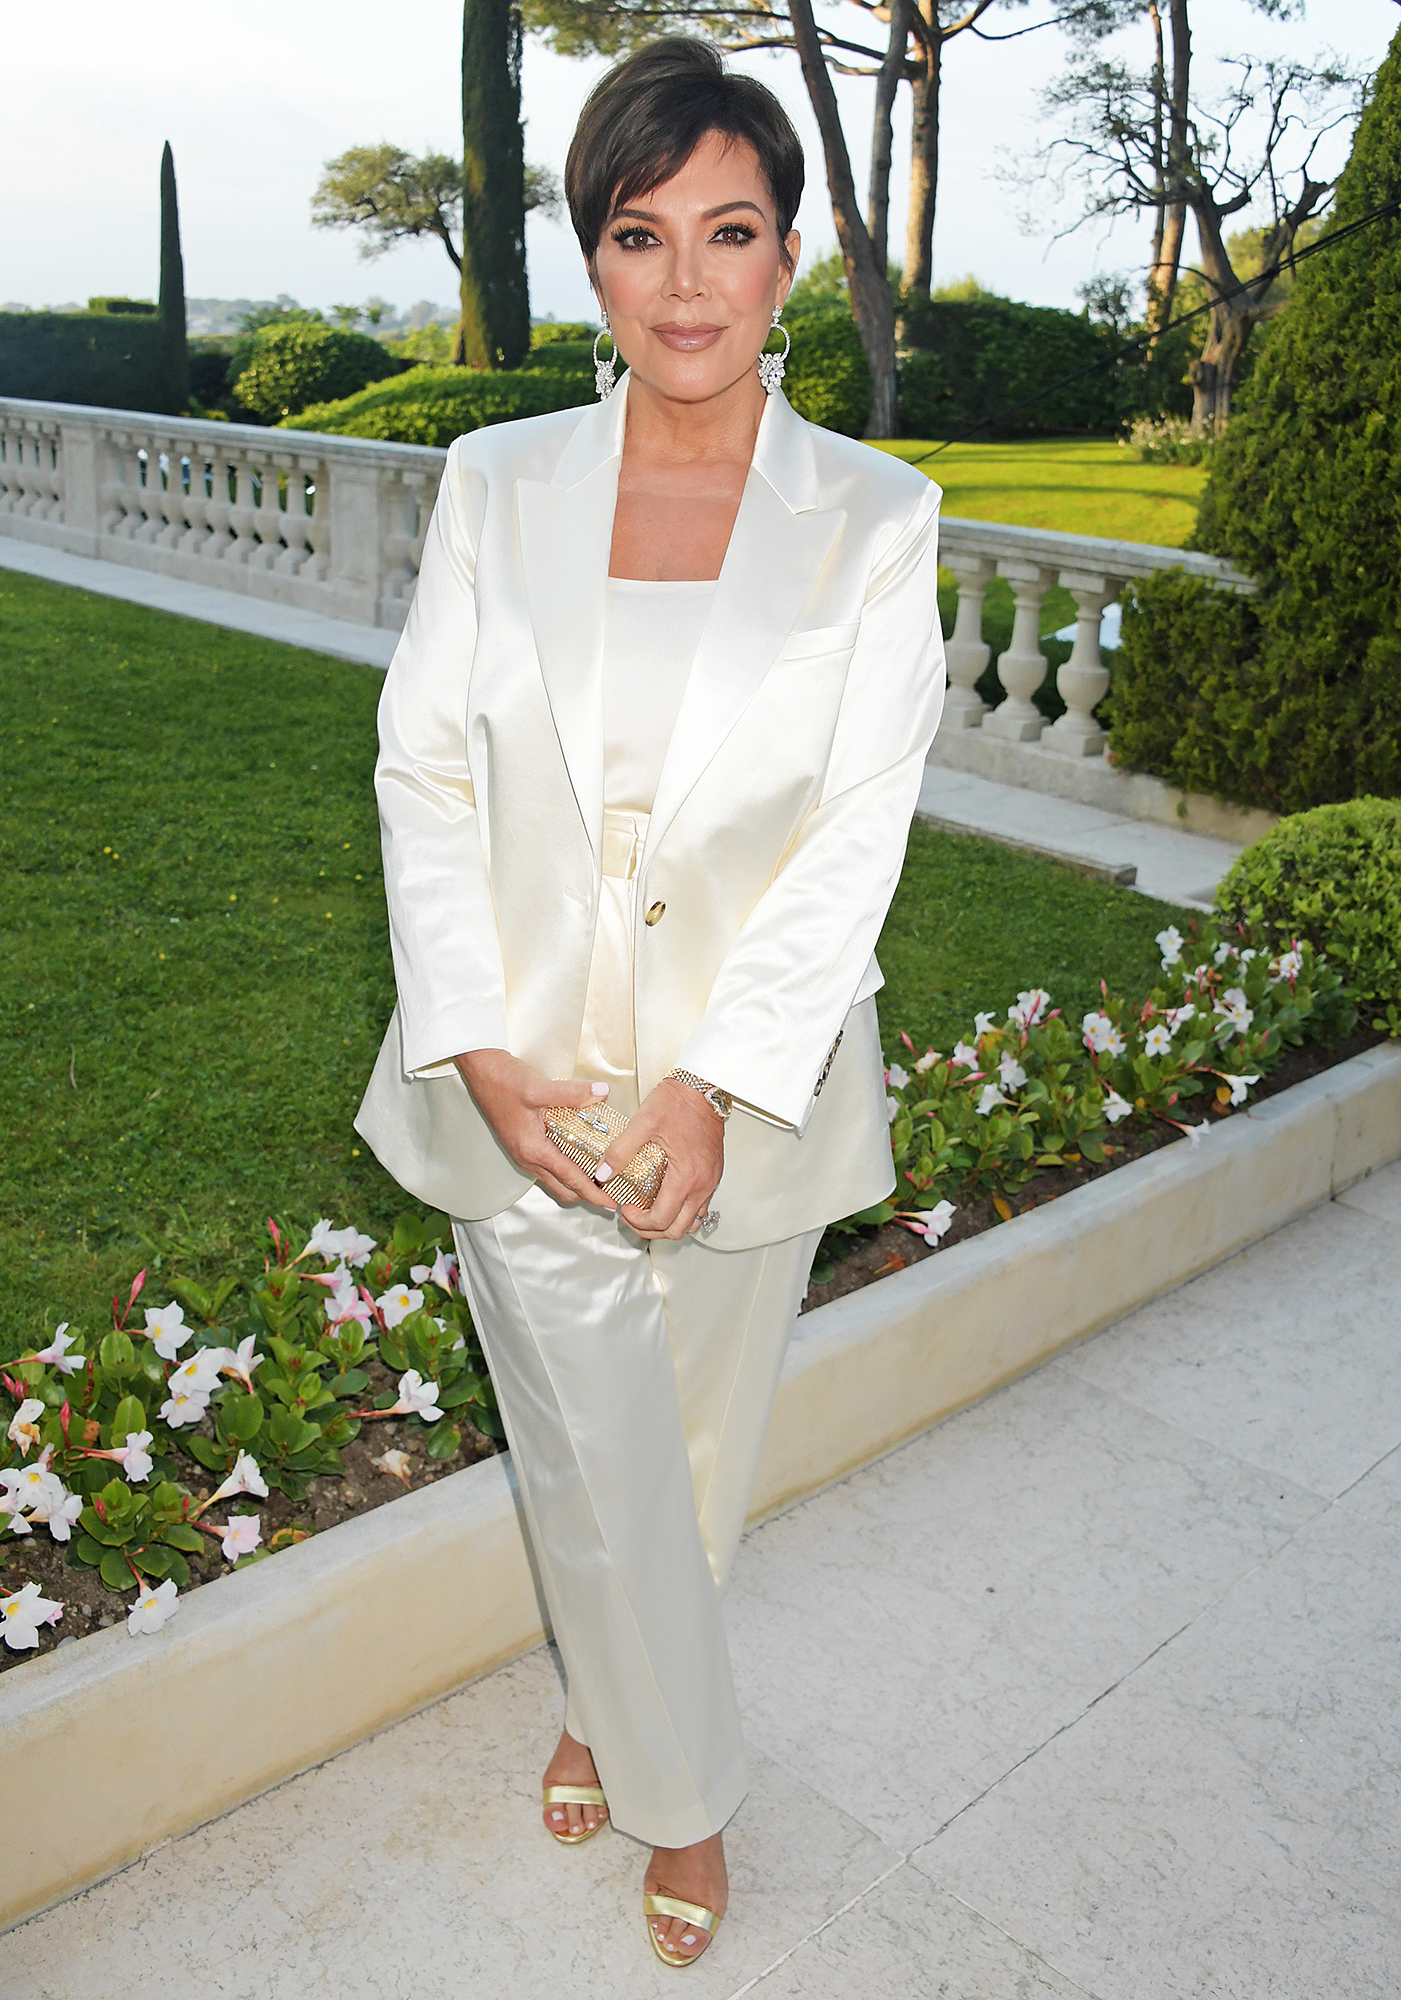 Kris-Jenner - The Keeping Up With the Kardashians star opted for a boss-lady pantsuit at the amfAR Cannes Gala on Thursday, May 23.